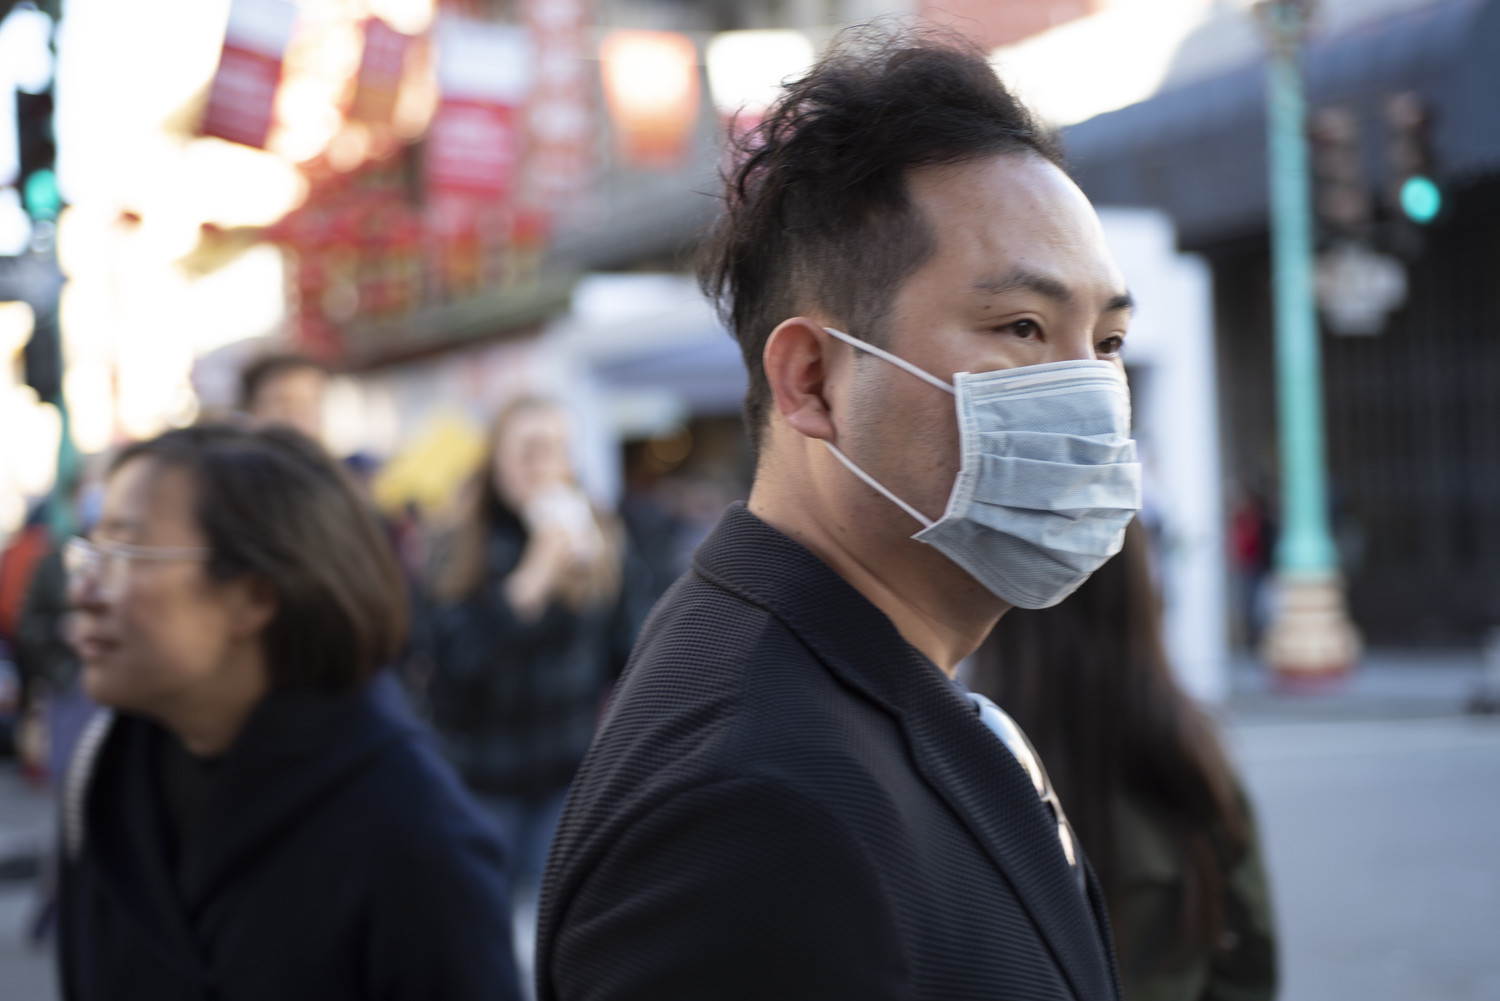 a man on the street wearing a respirator mask. Many popular events have been rescheduled due to coronavirus